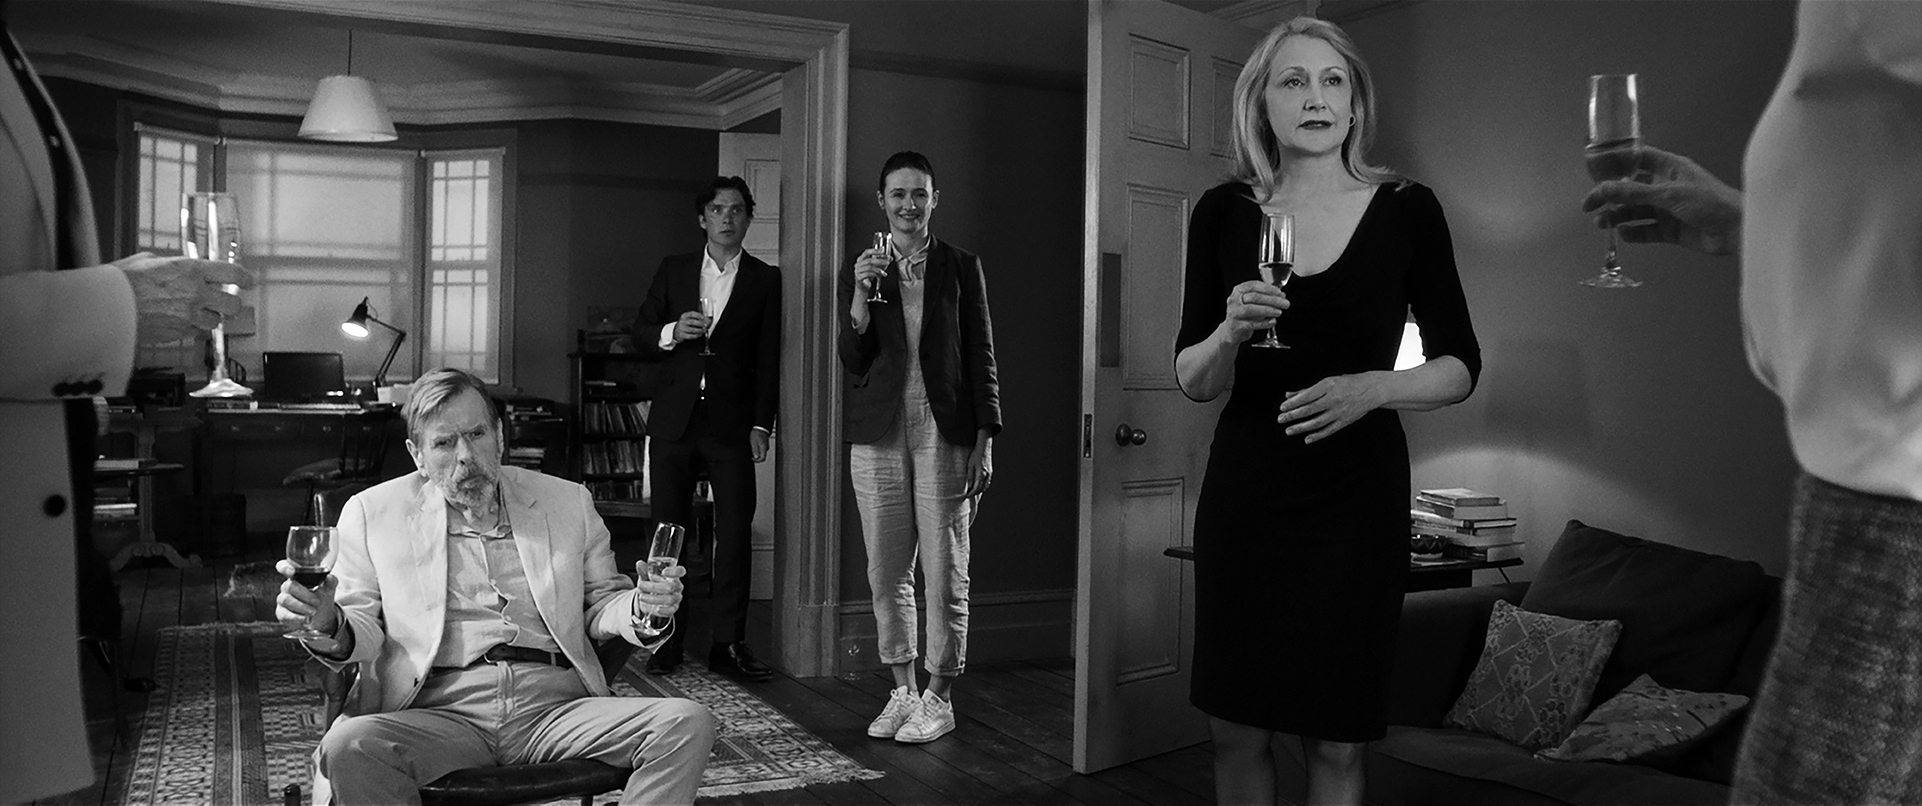 Timothy Spall, Cillian Murphy, Emily Mortimer, Patricia Clarkson - The Party © Adventure Pictures Limited 2017